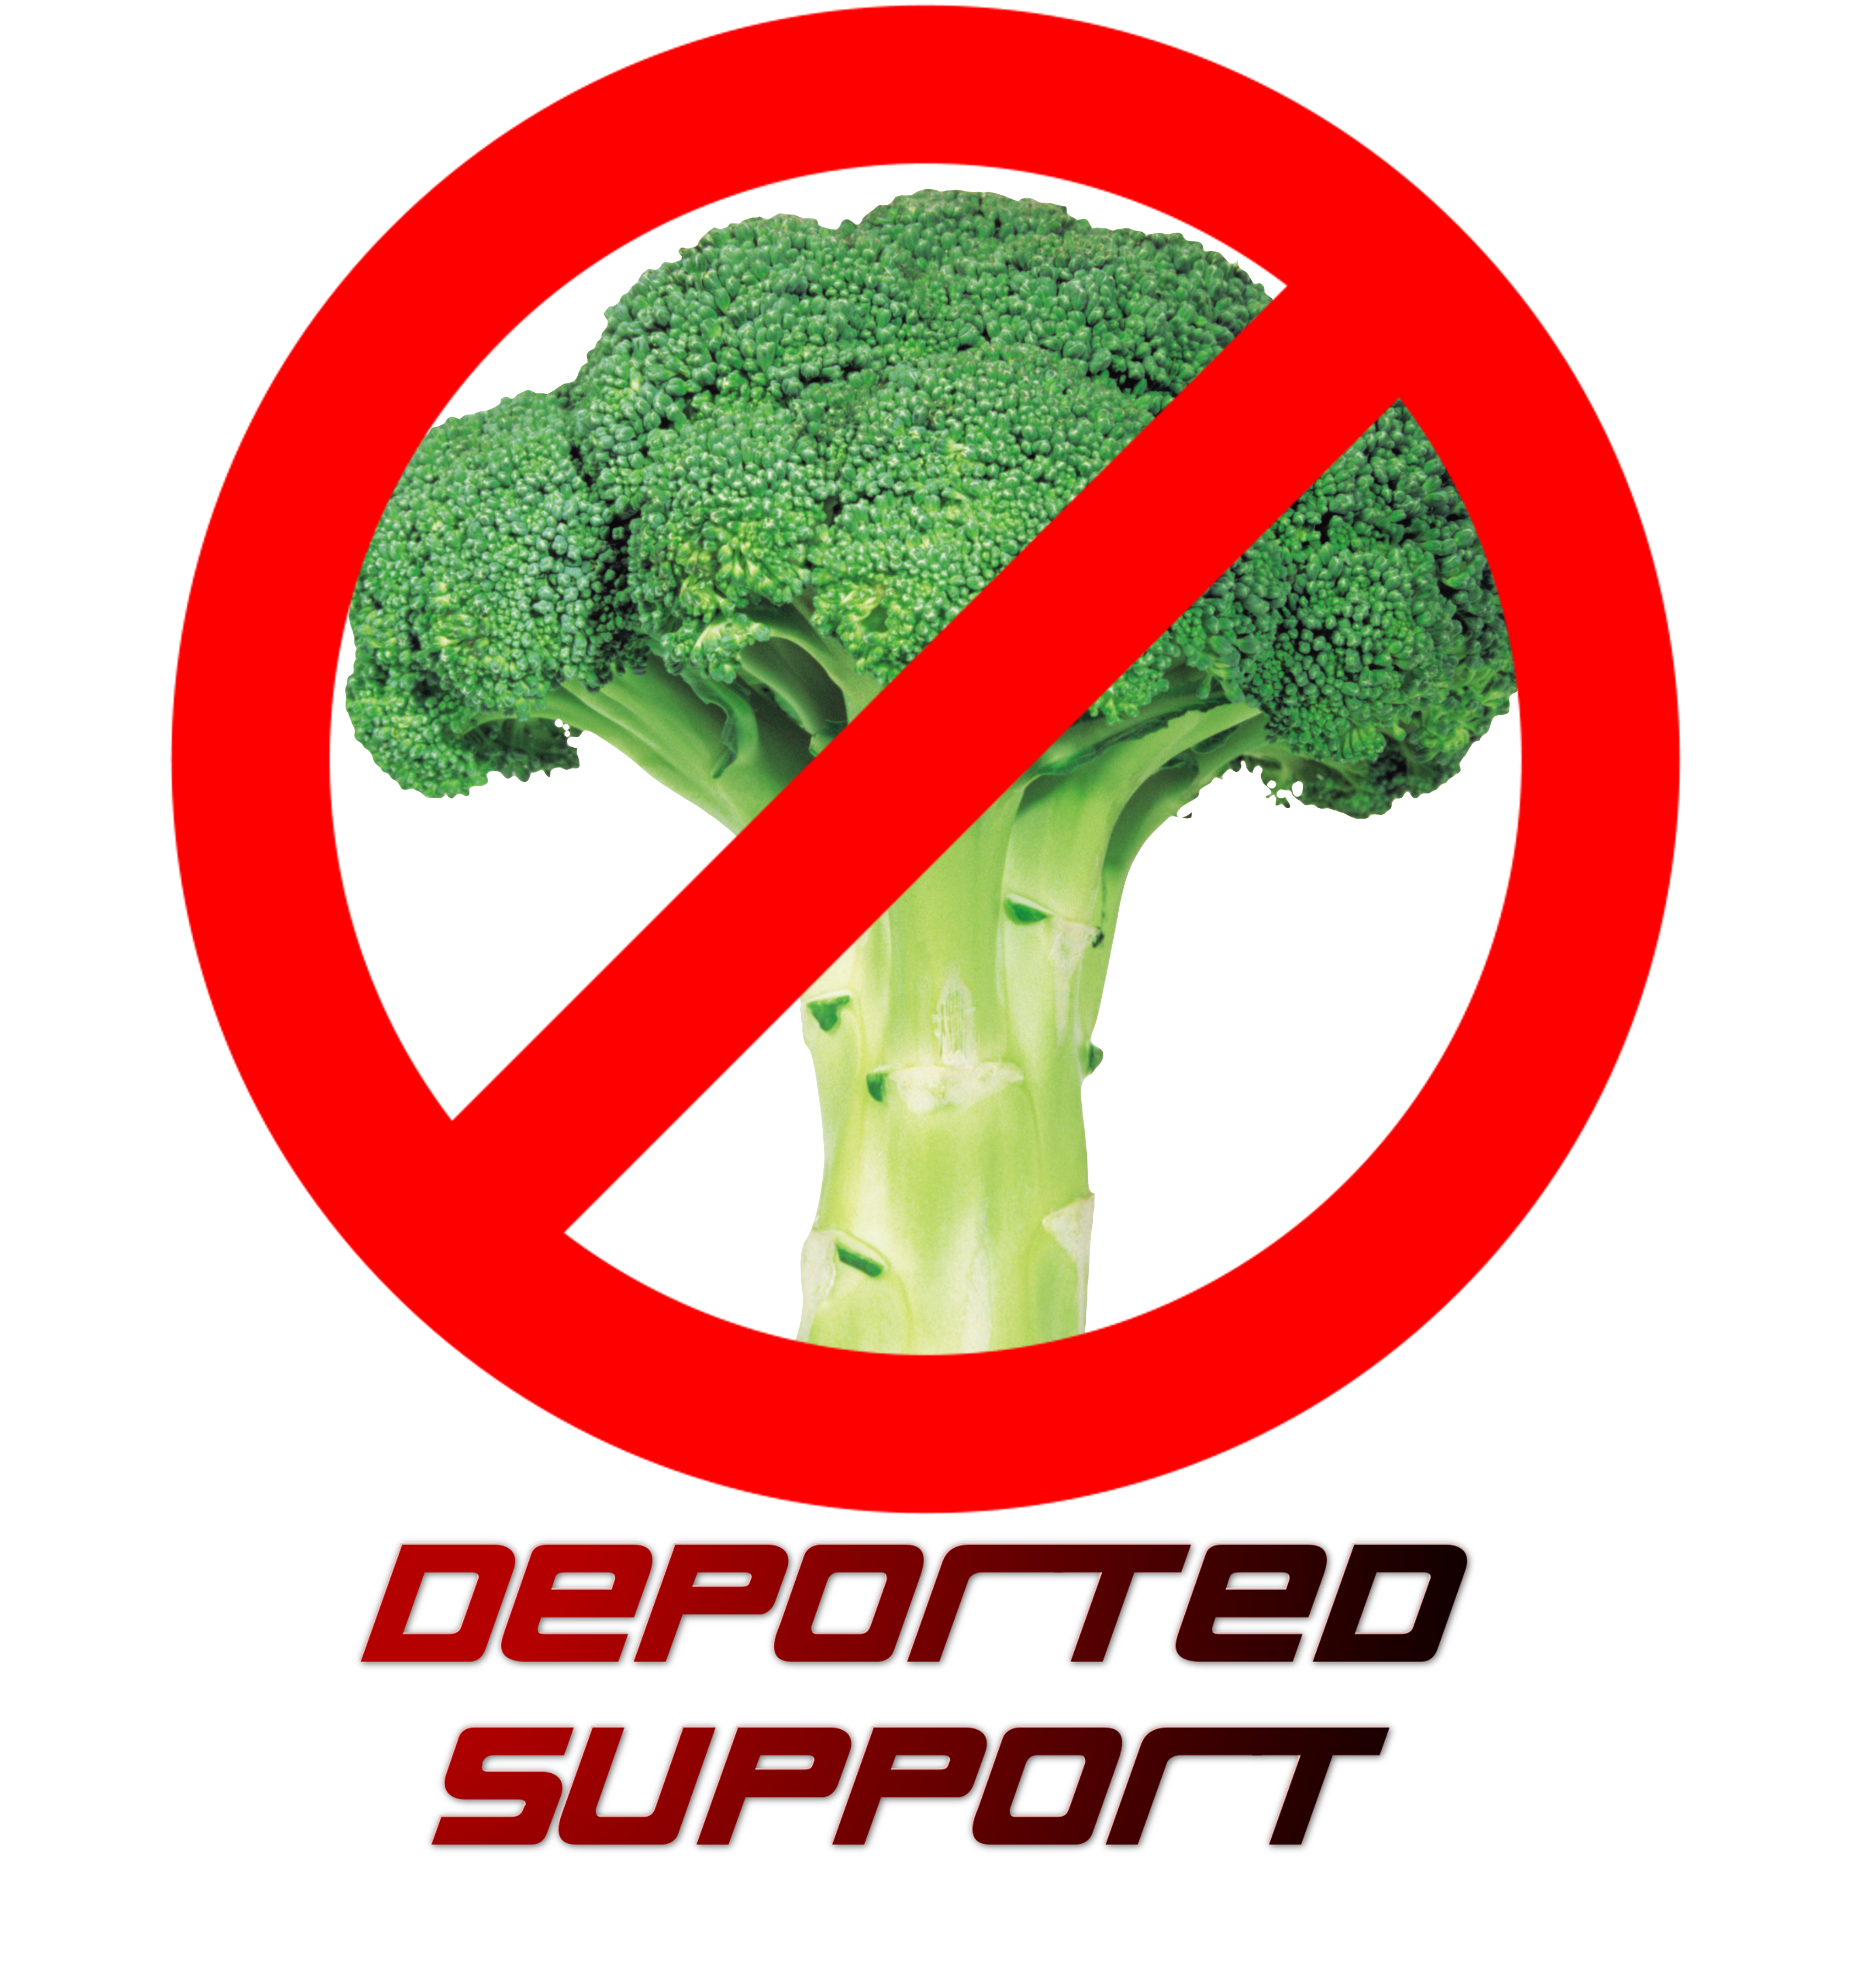 Deported Support